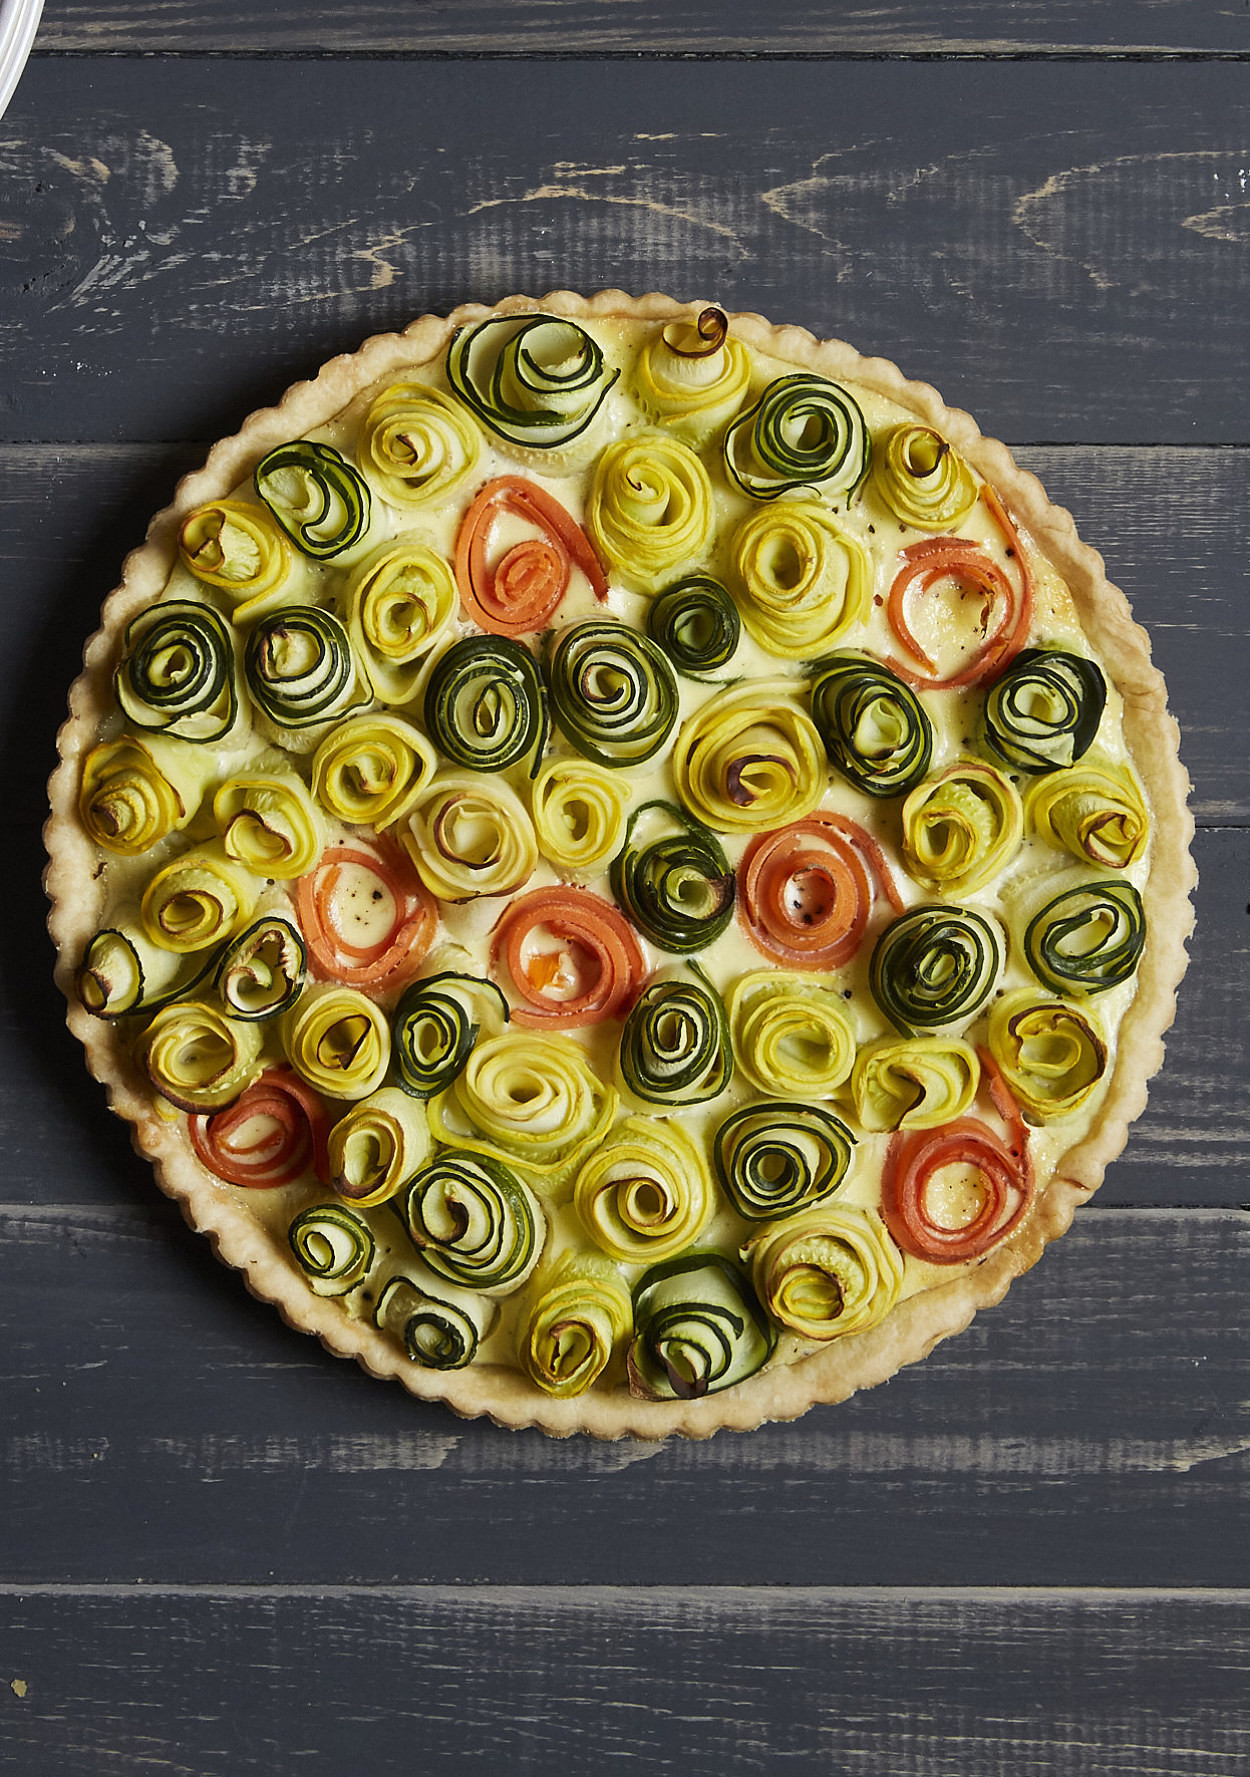 Brunch Ideas For Easter: This Blooming Vegetable Quiche Is The Most Beautiful